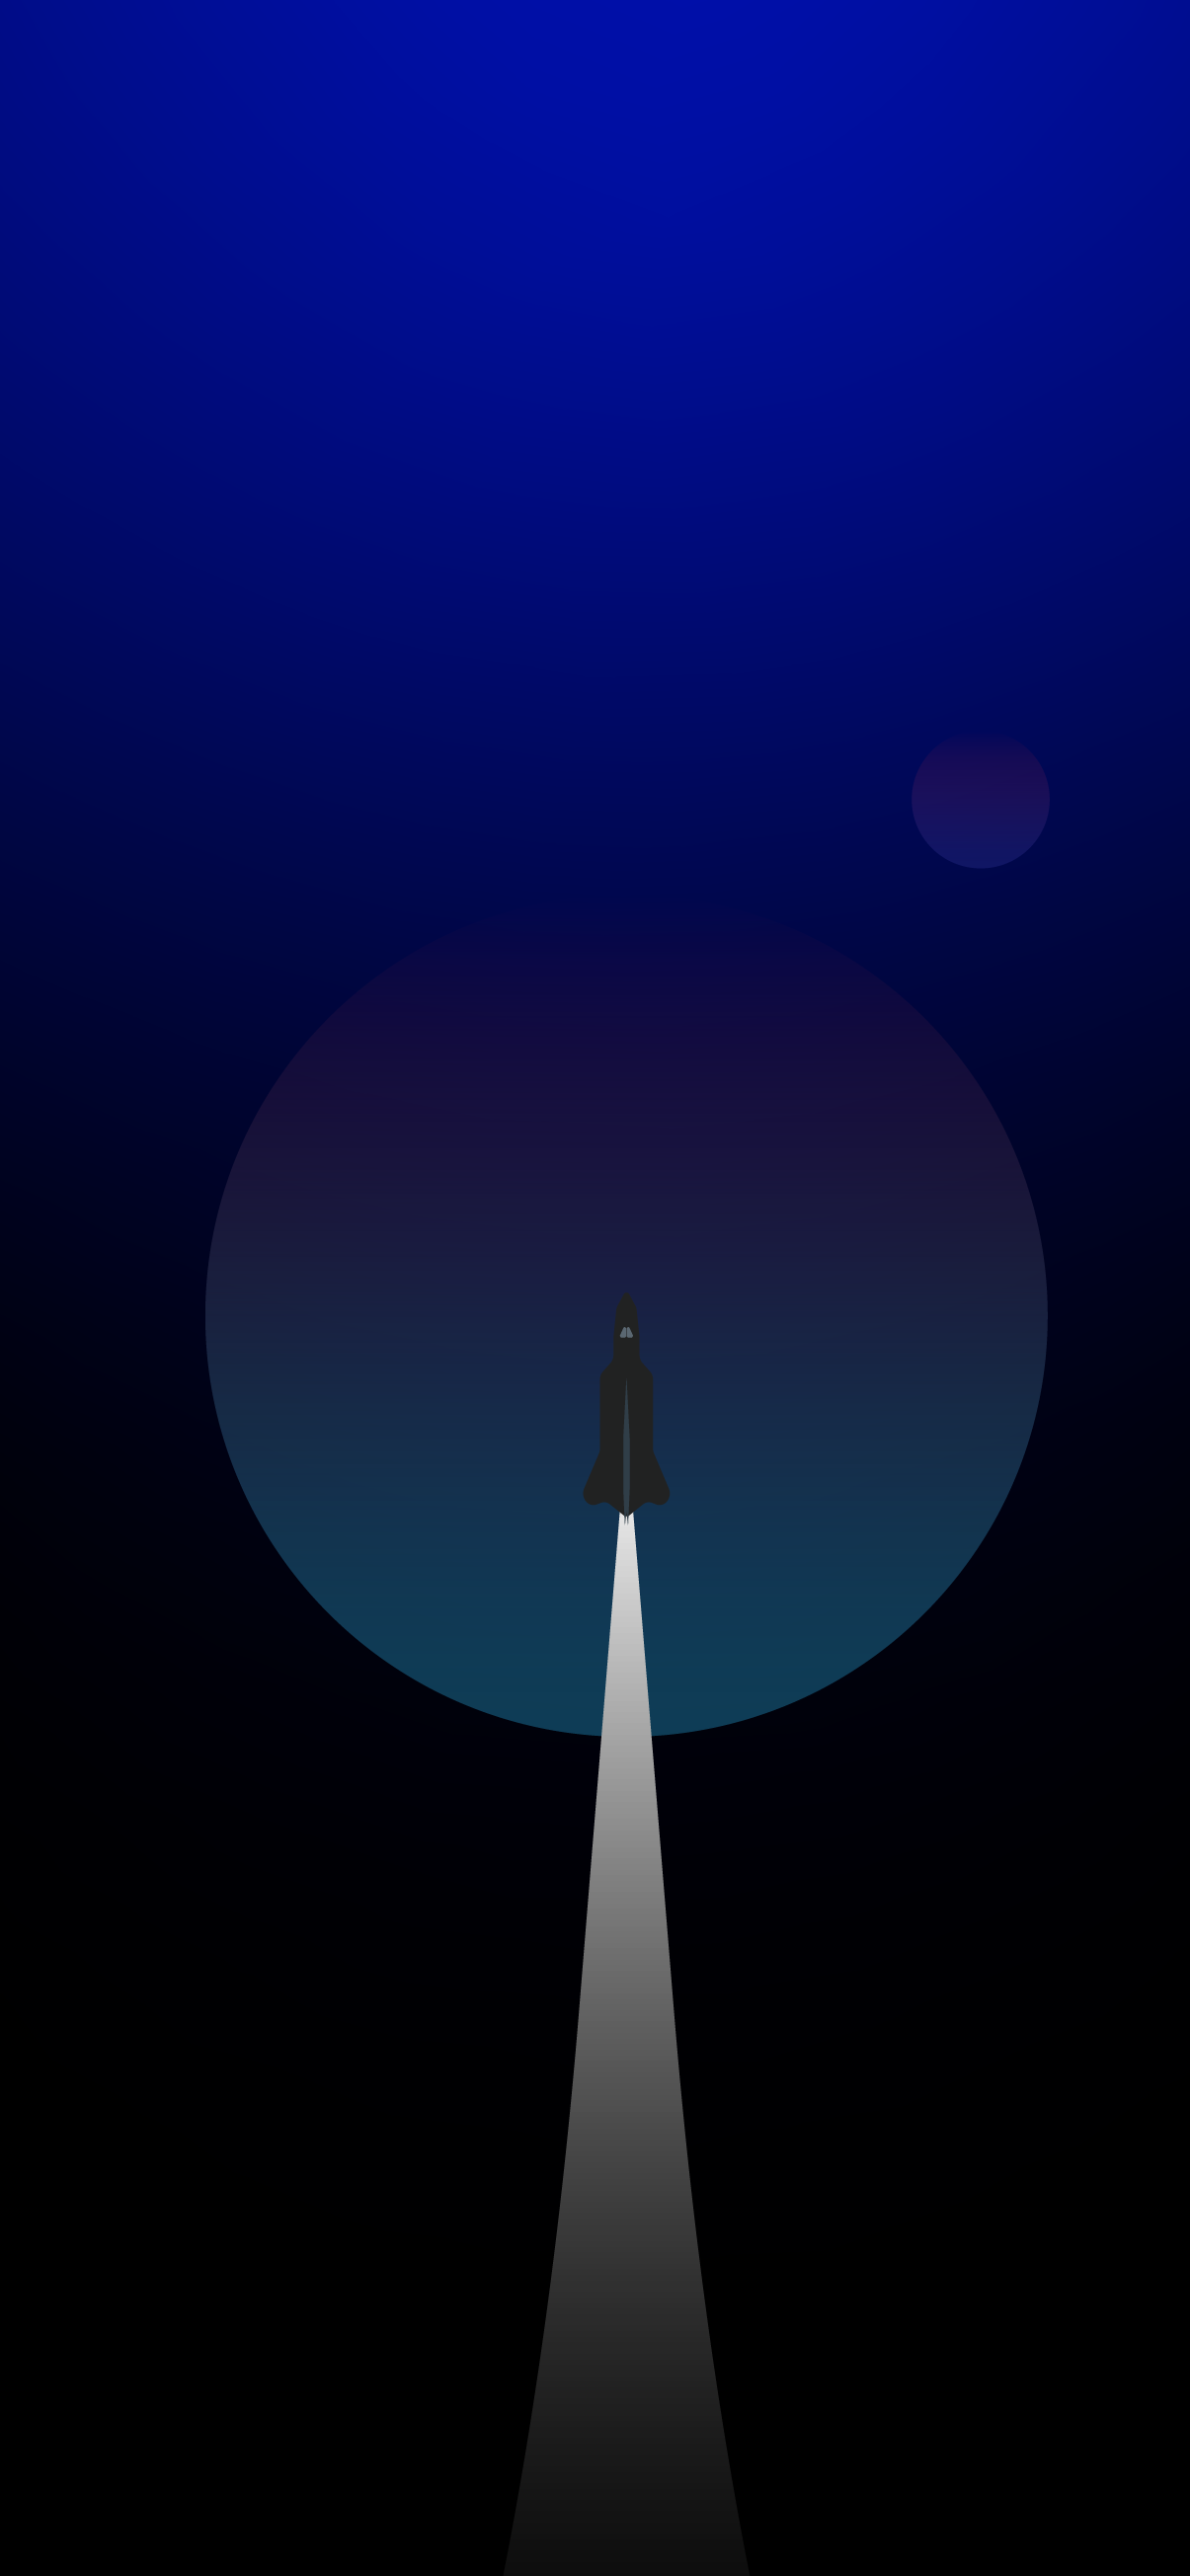 blue minimalistic rocket wallpaper for mobile phone iphone